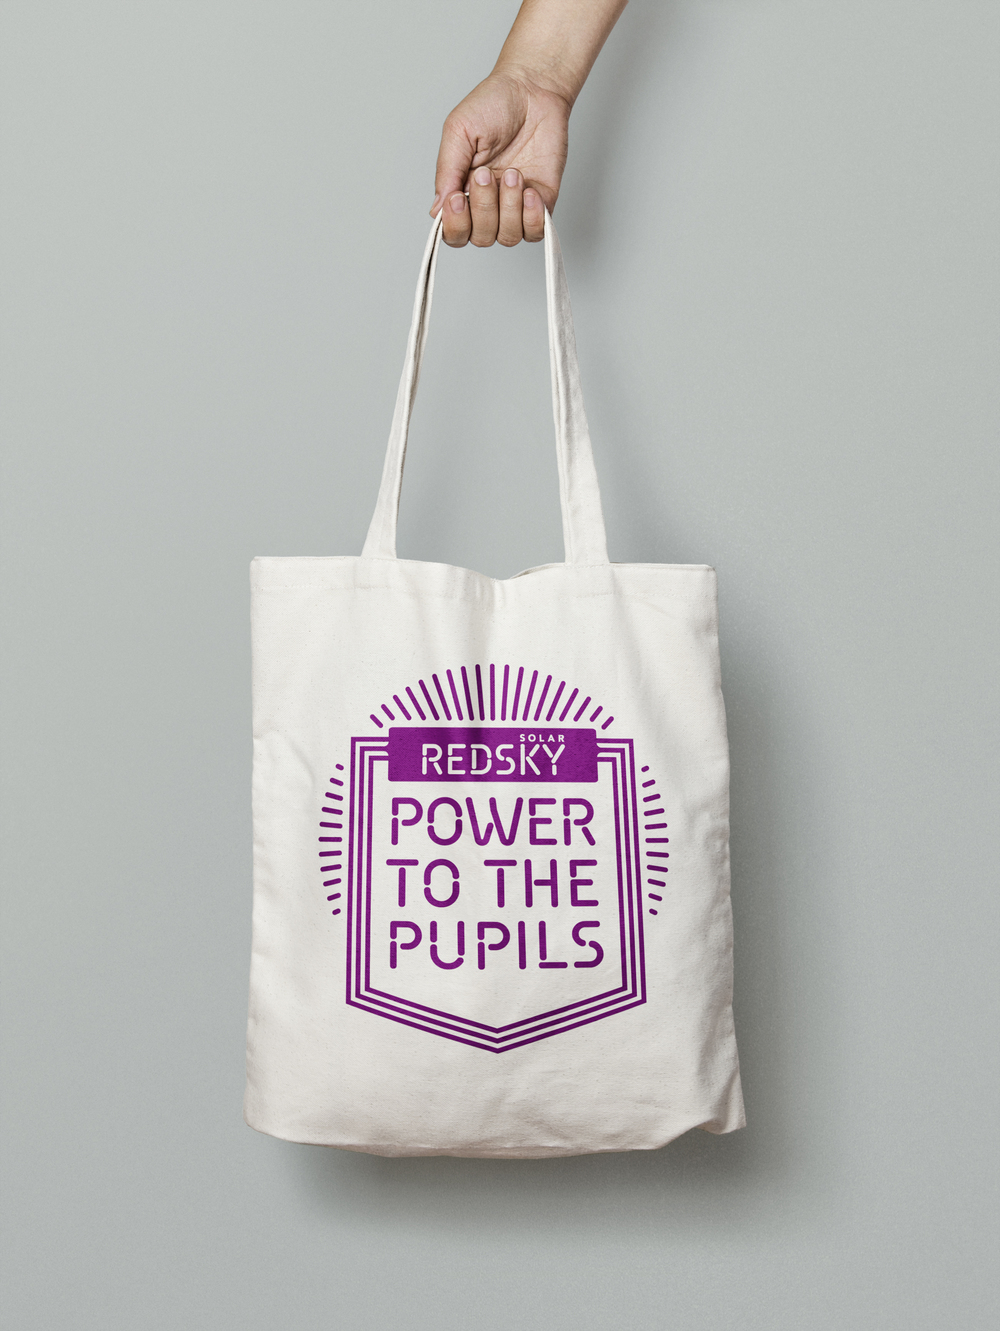 Power to the Pupils Design and Marketing campaign bag design